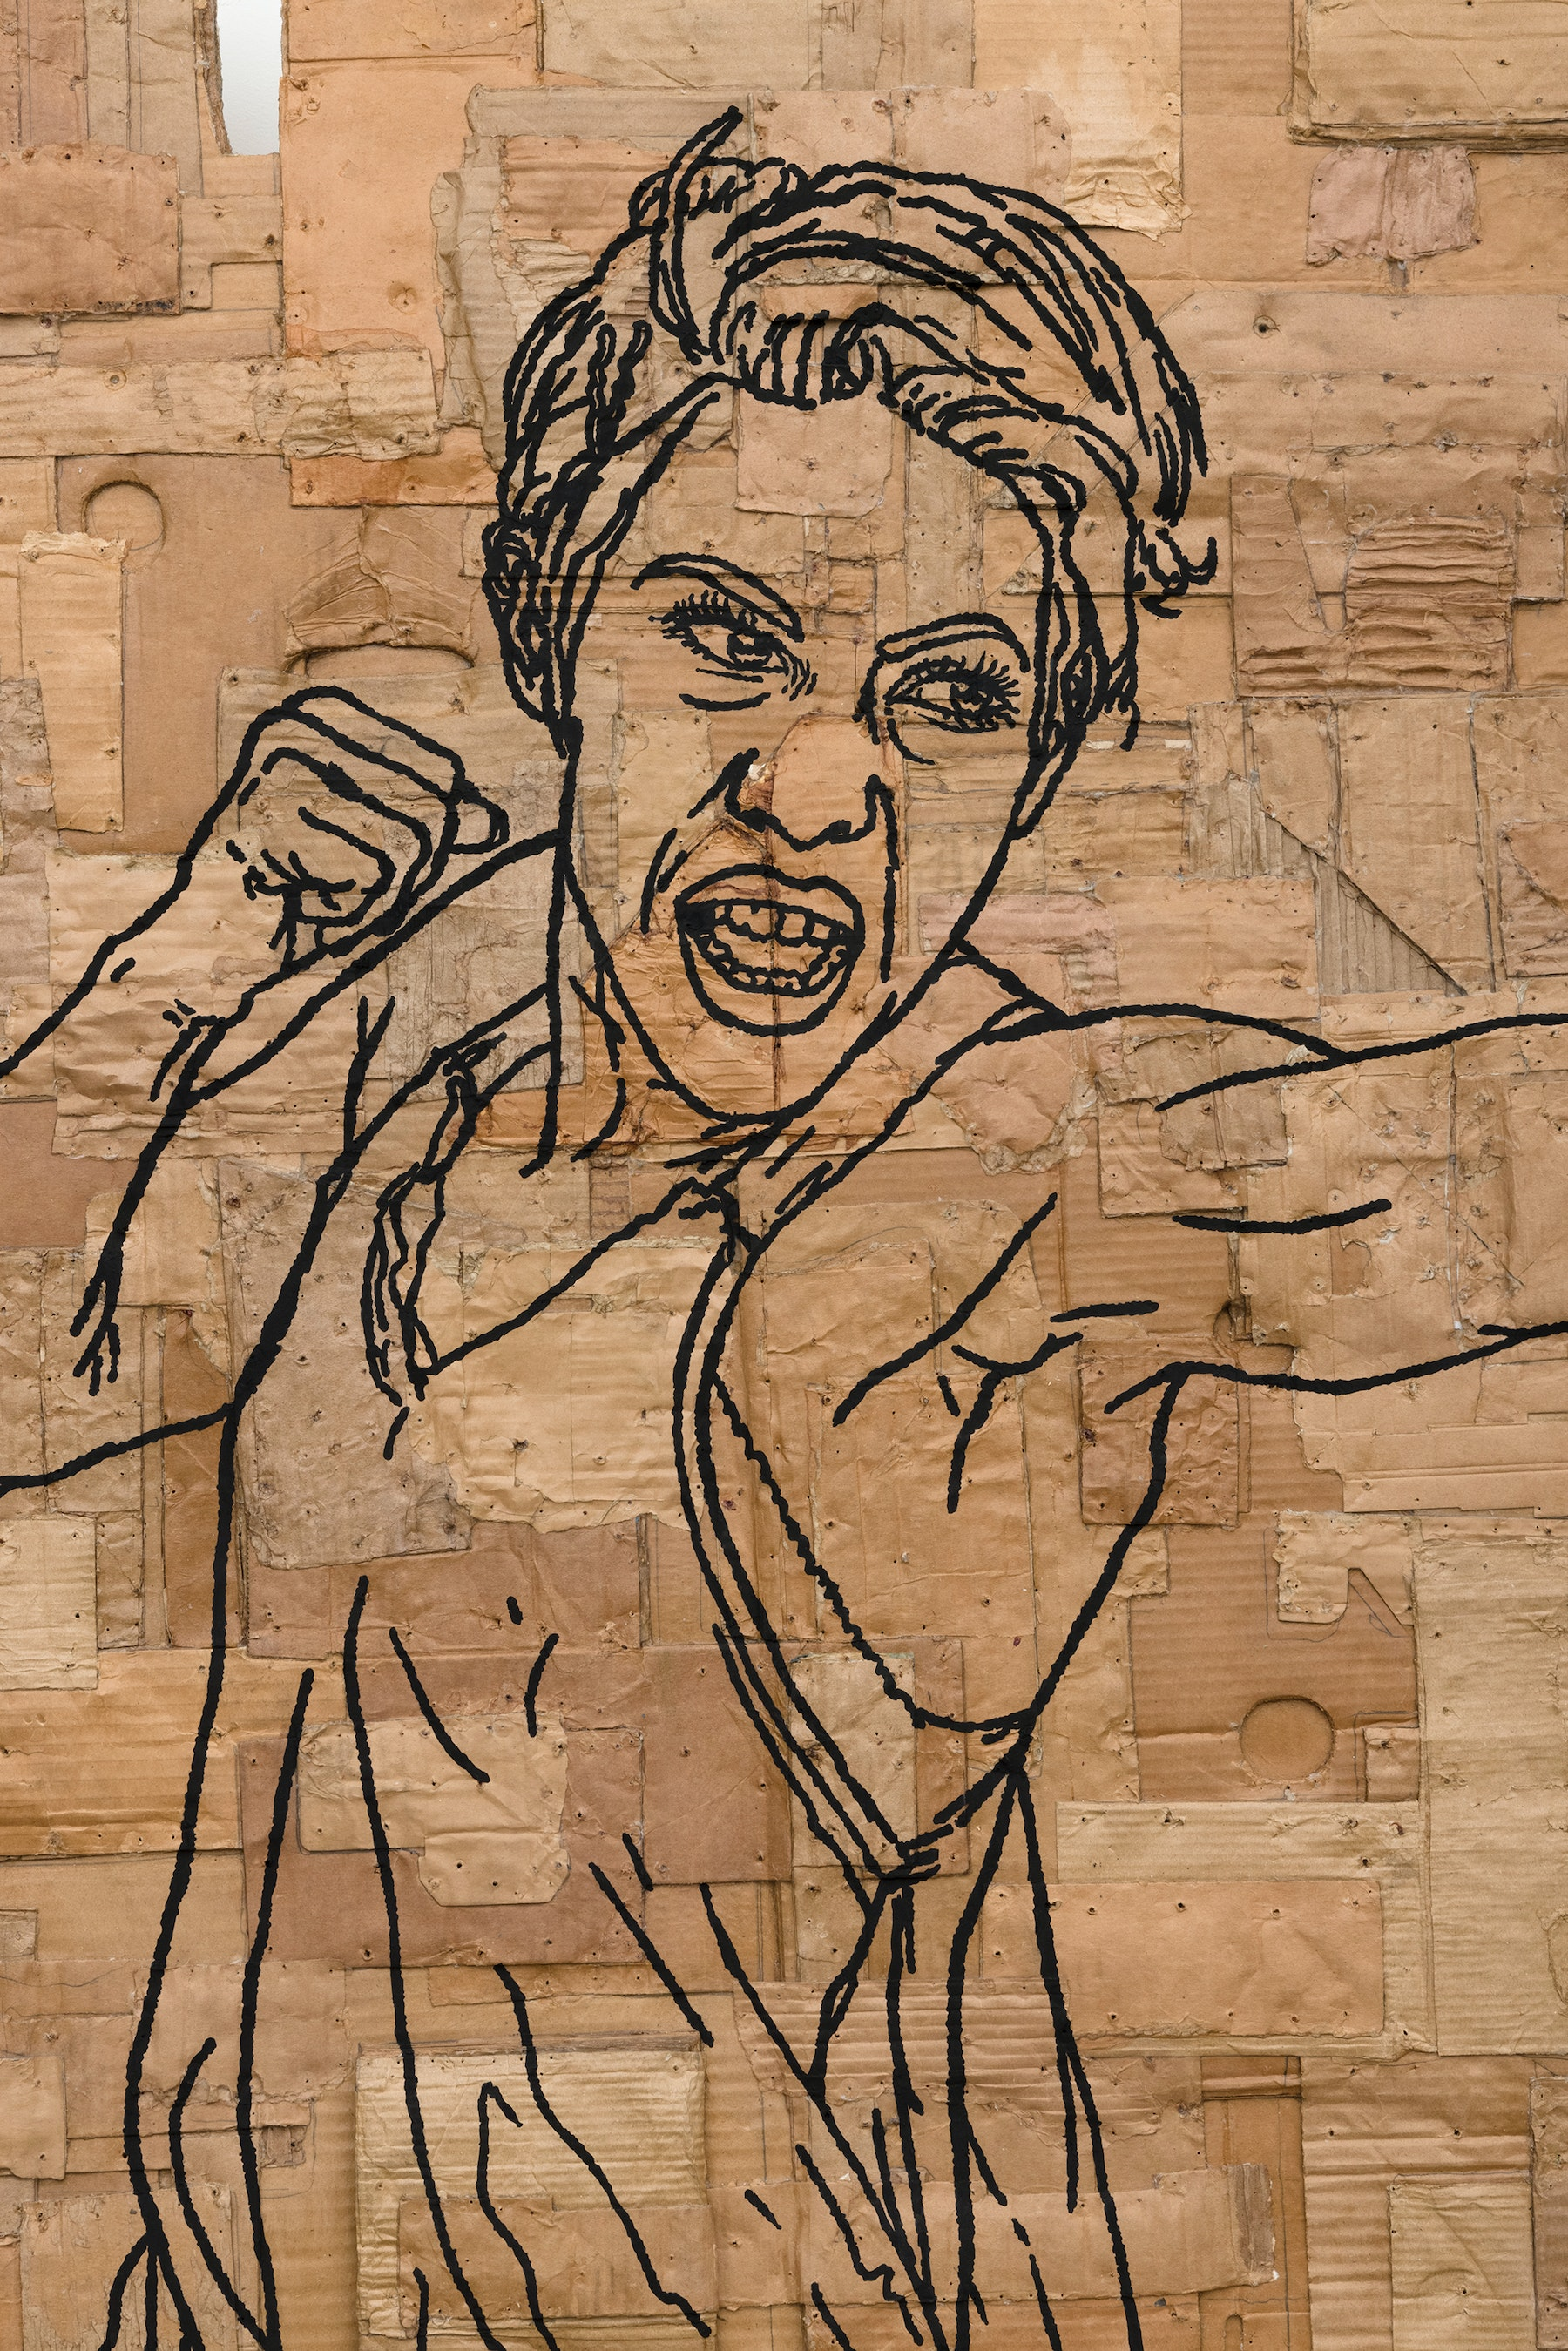 """Andrea Bowers """"Fighting Women, Sunny, Jab,"""" 2021 Acrylic and pigment ink on cardboard 95 ¹⁄₂"""" x 60"""" x 4 ¹⁄₂"""" [HxWxD] (242.57 x 152.4 x 11.43 cm) Inventory #BOW578 Courtesy of the artist and Vielmetter Los Angeles Photo credit: Jeff McLane"""